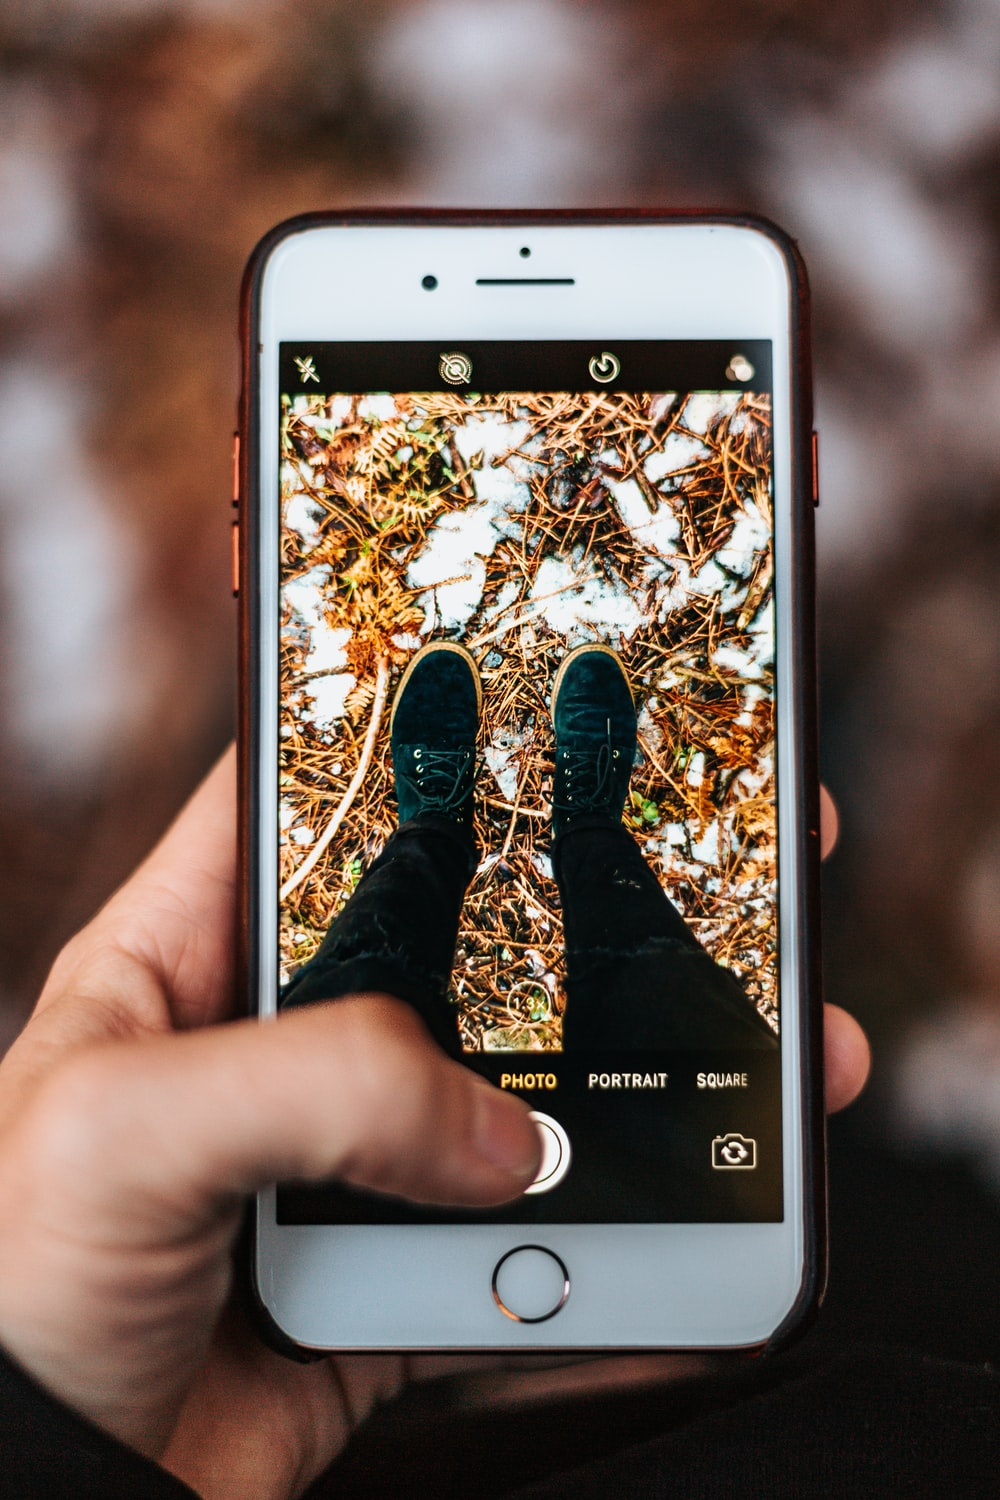 person holding iPhone taking photo of shoes